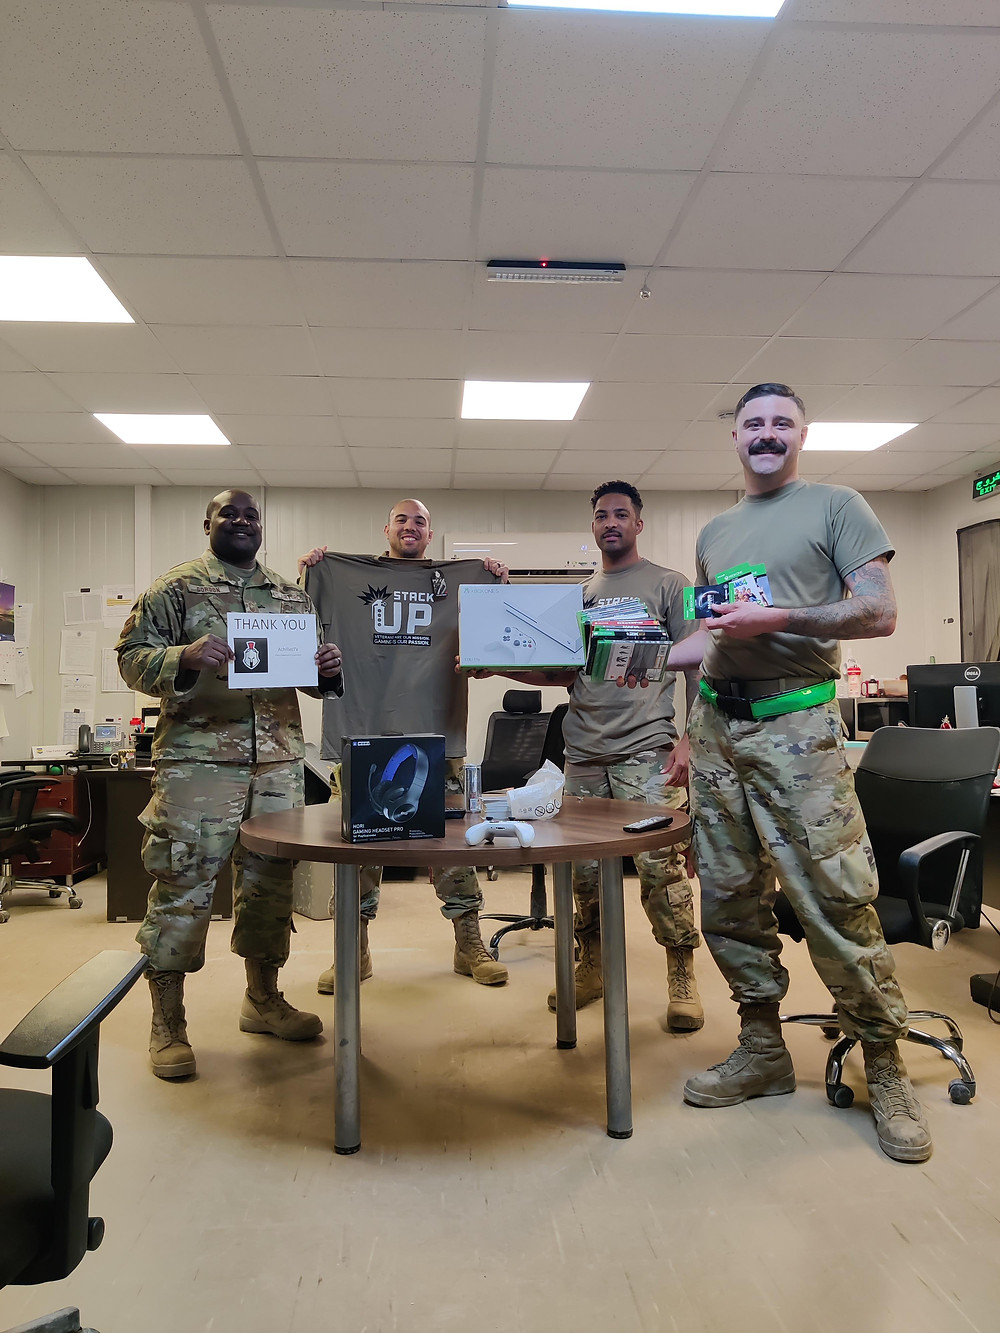 4 soldiers post in a recreation room with an xbox one s console and games.